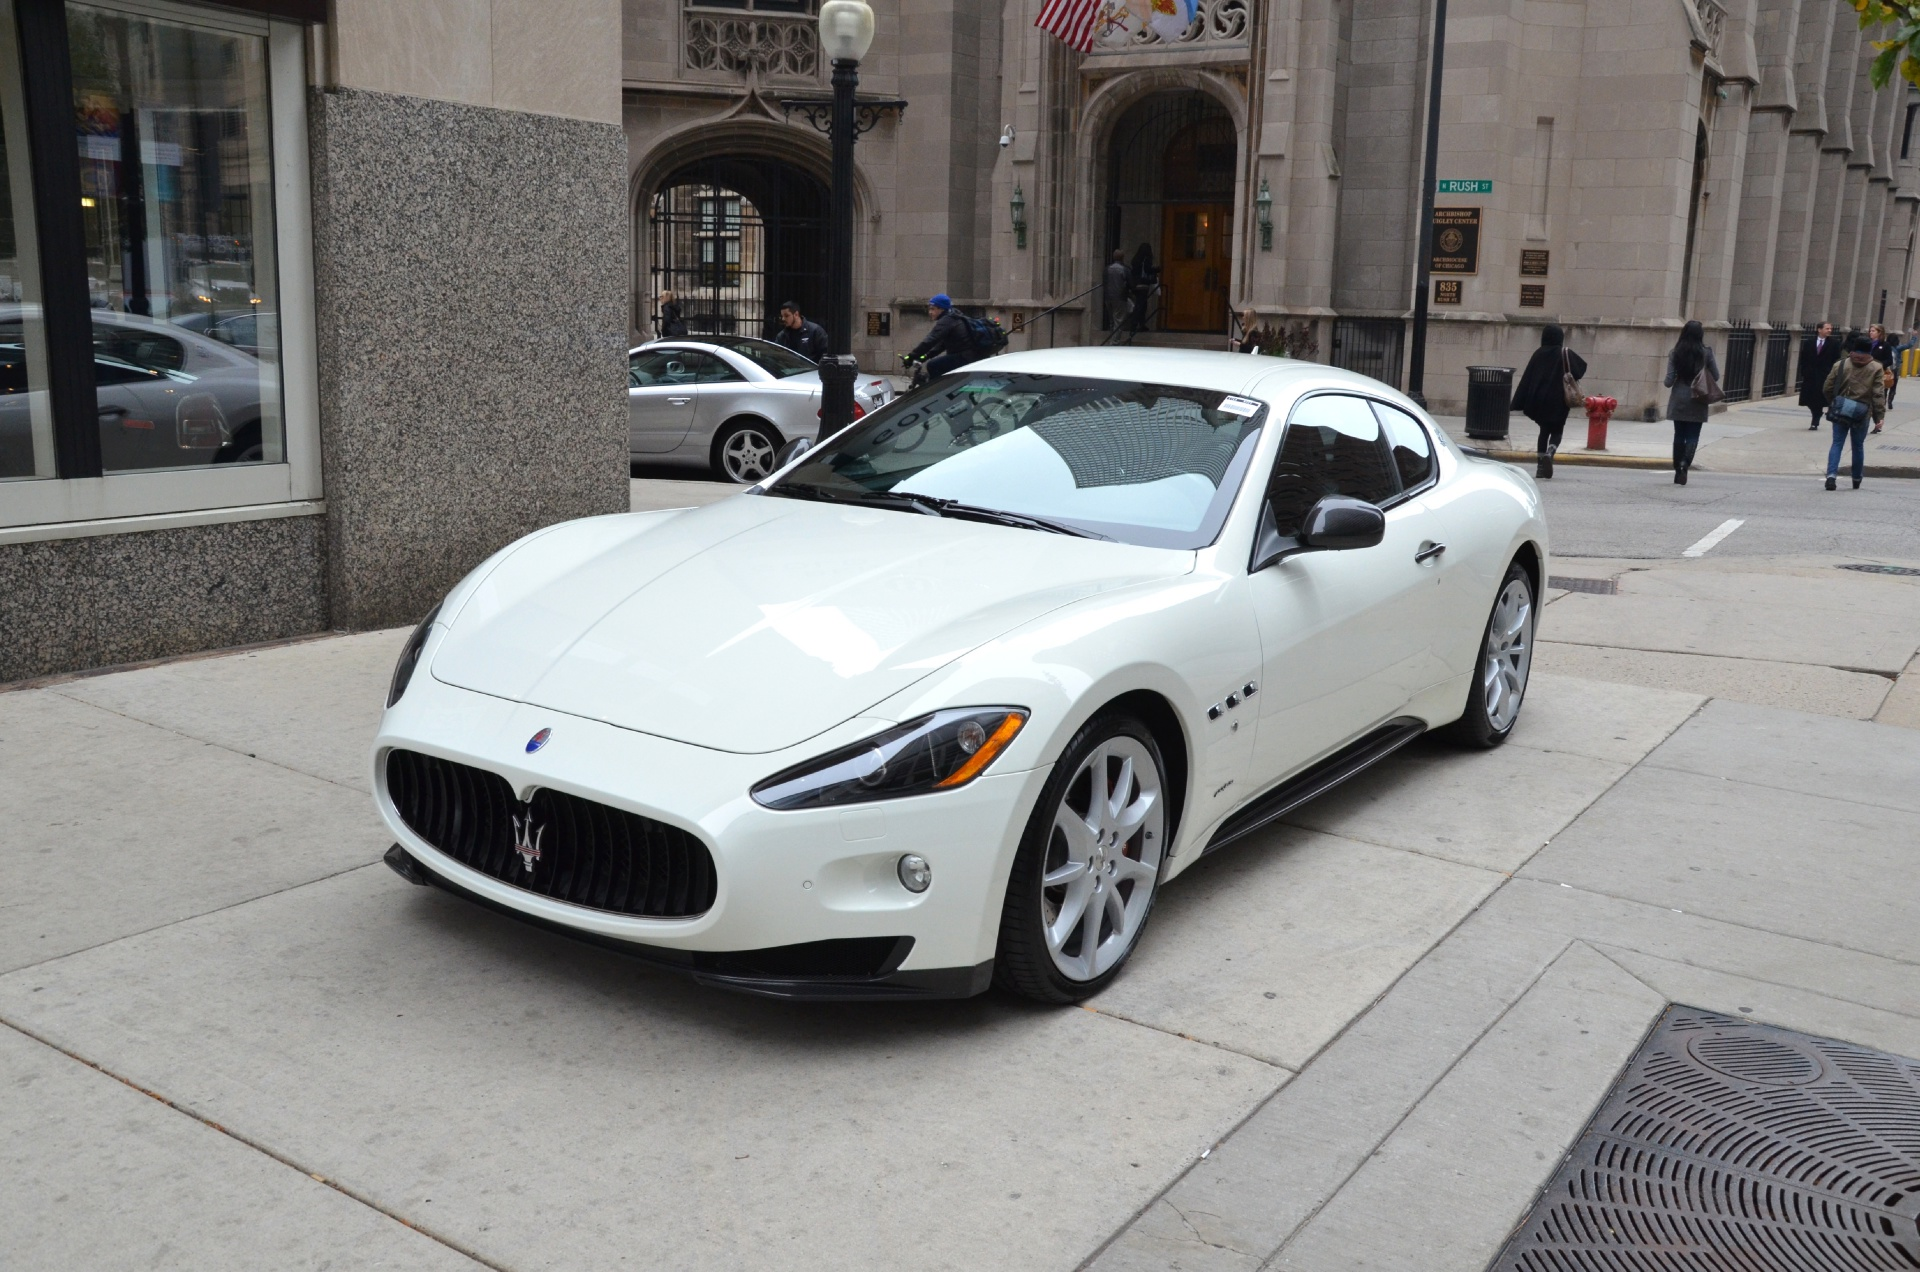 2012 maserati granturismo s mc sportline stock m009 for sale near chicago il il maserati dealer. Black Bedroom Furniture Sets. Home Design Ideas